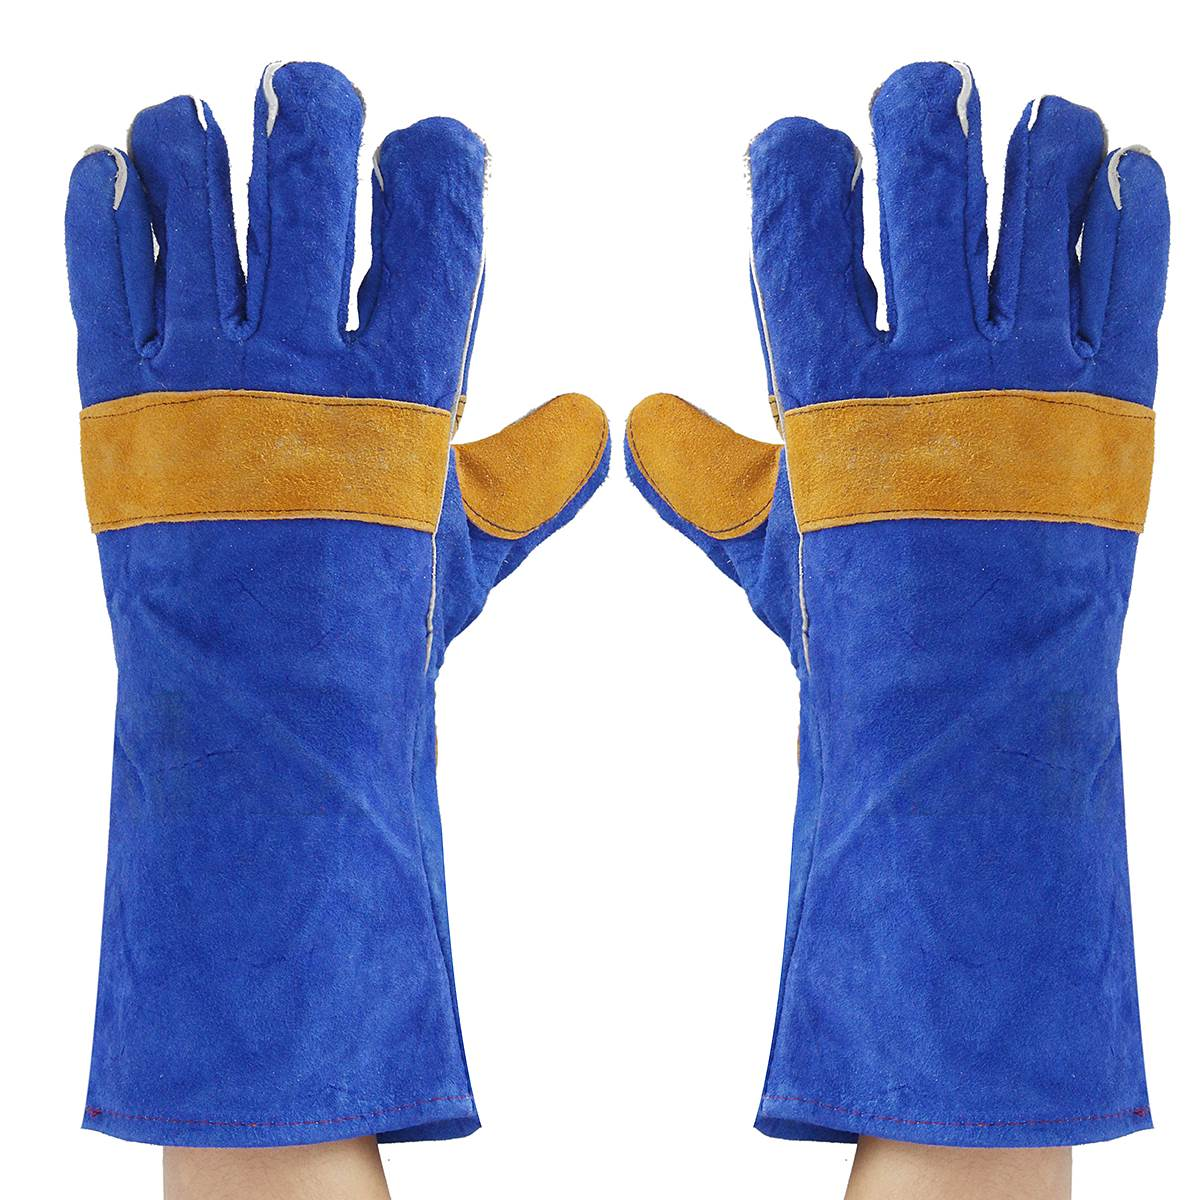 35/40cm Heavy Duty Welding Gloves Leather Cowhide Protect Welder Hands 2 Sizes Workplace Safety Gloves free shipping gm 4e d4 0s 4 fultes 4mm shank zcc ct carbide cutting tool end mill cutter for drill and milling